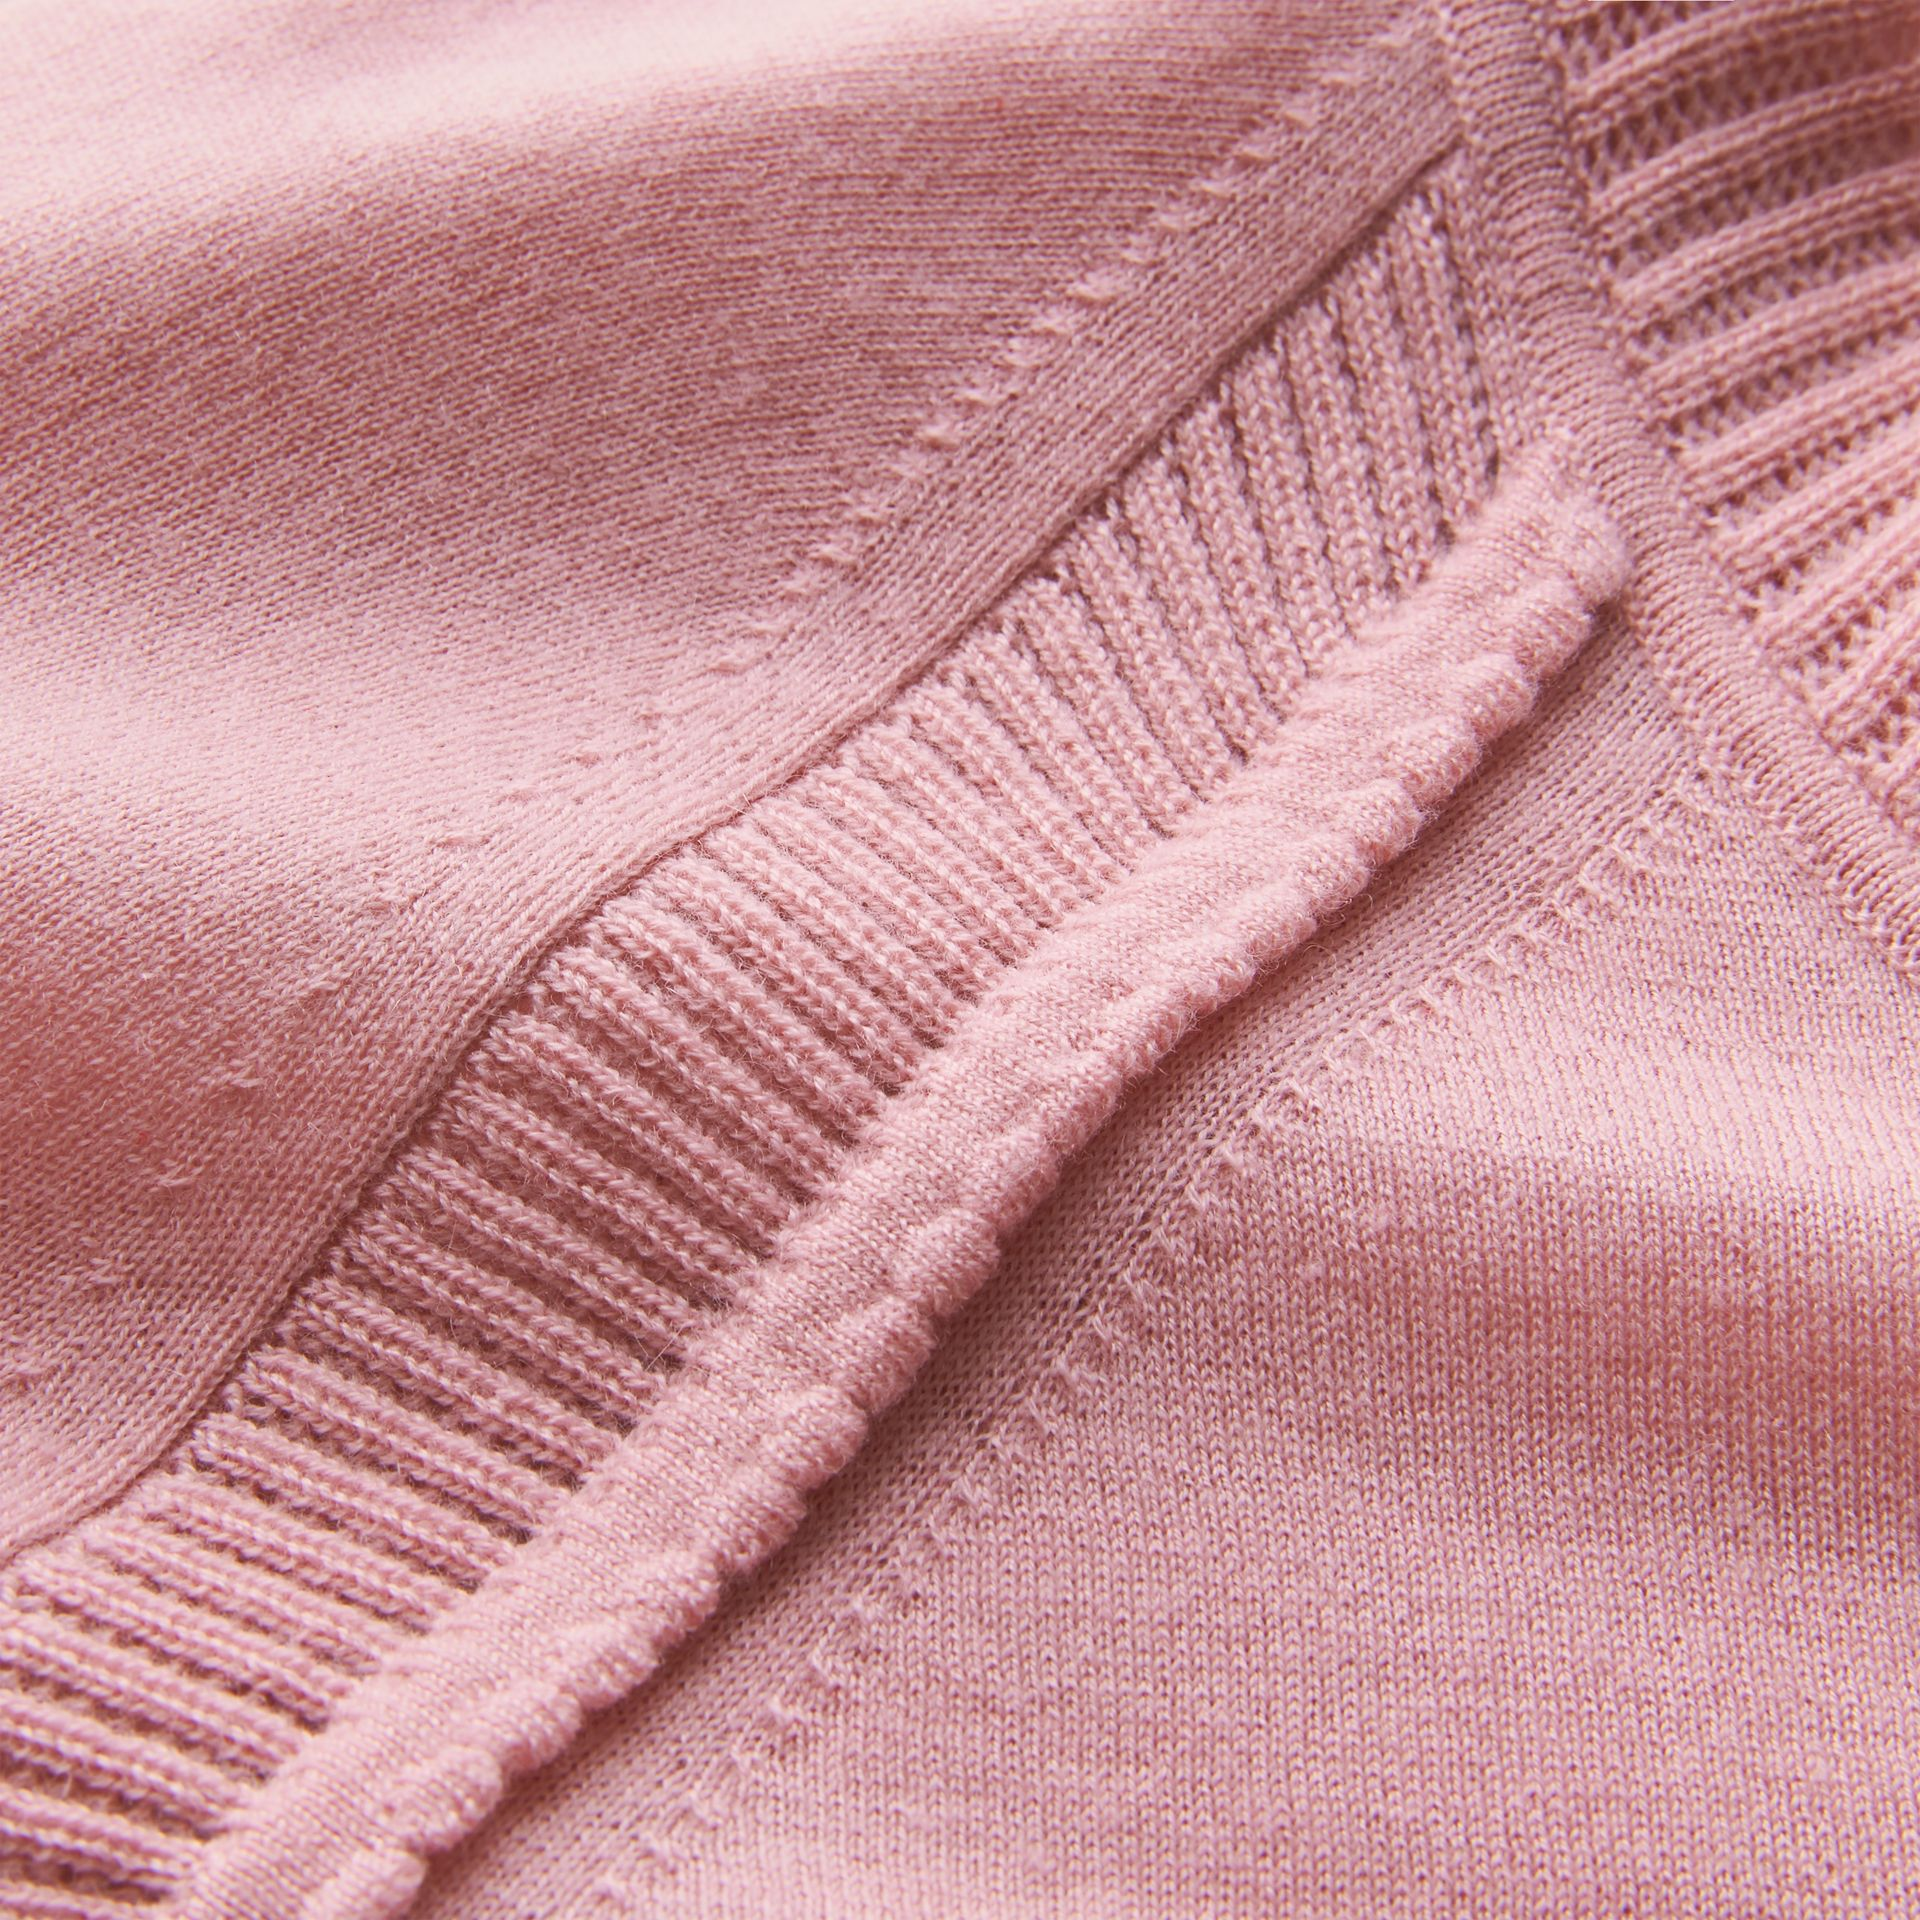 Open-knit Detail Cashmere Cardigan in Apricot Pink - Women | Burberry - gallery image 2